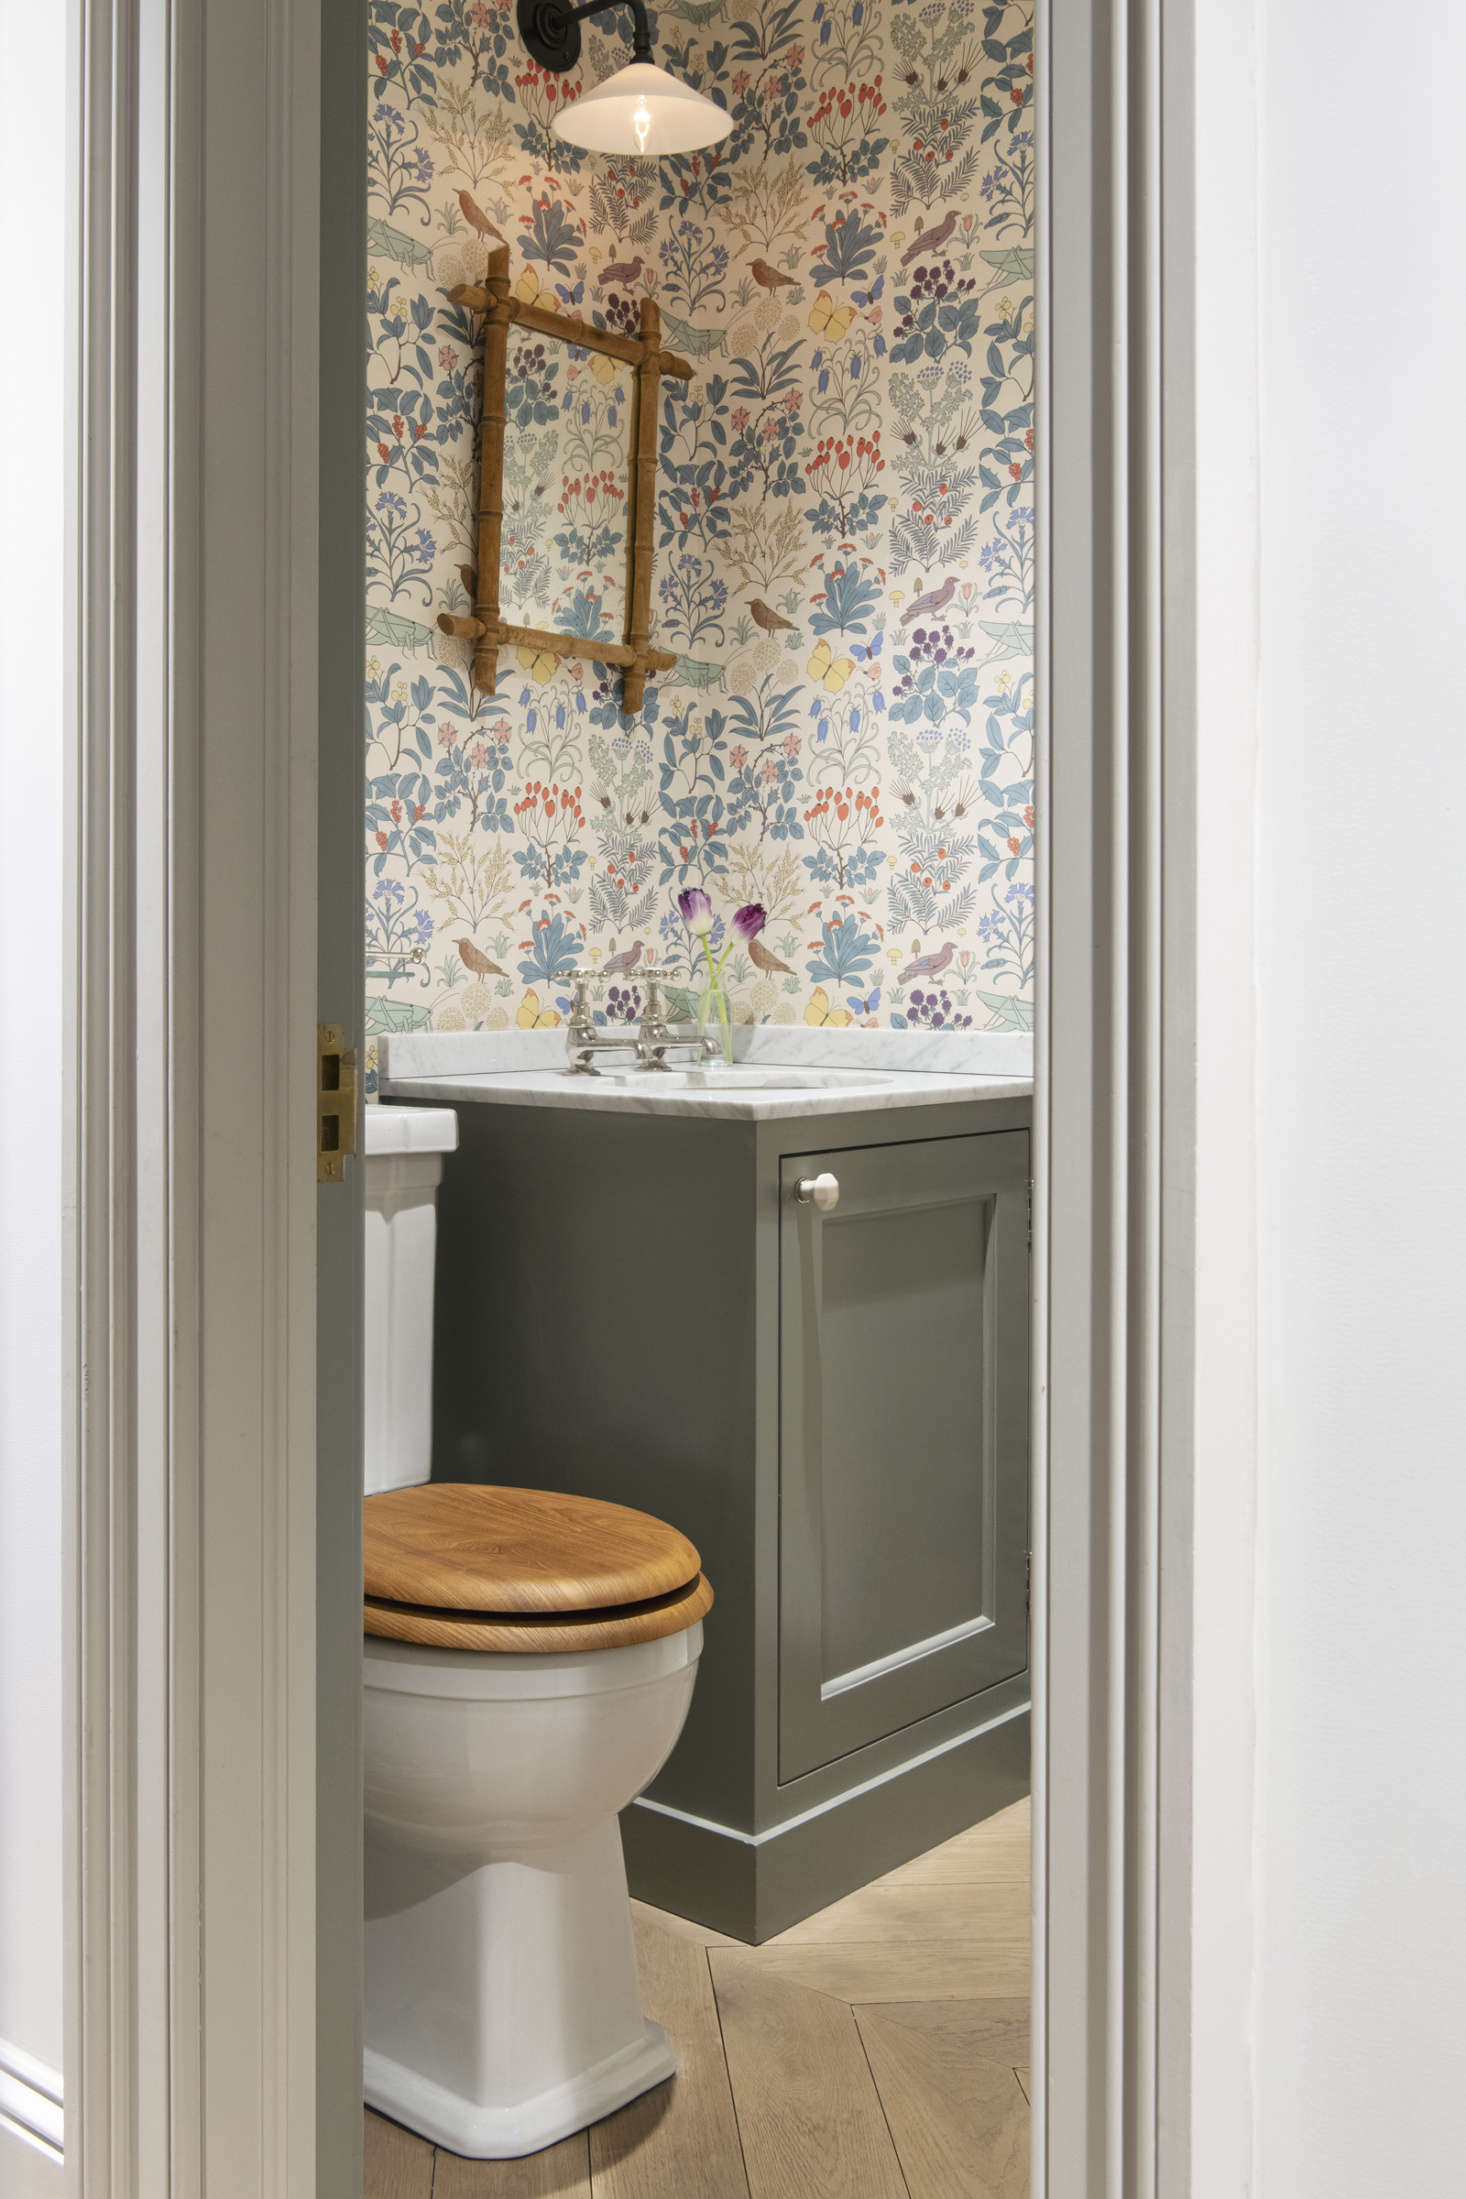 The powder room is papered in CFA Voysey's 1926 pattern Apothecary's Garden from Trustworth Studios. (See the same pattern in a Jersey Ice Cream Co. country house bedroom.) The sconce over the mirror is the Glass Wall Light from Hector Finch.